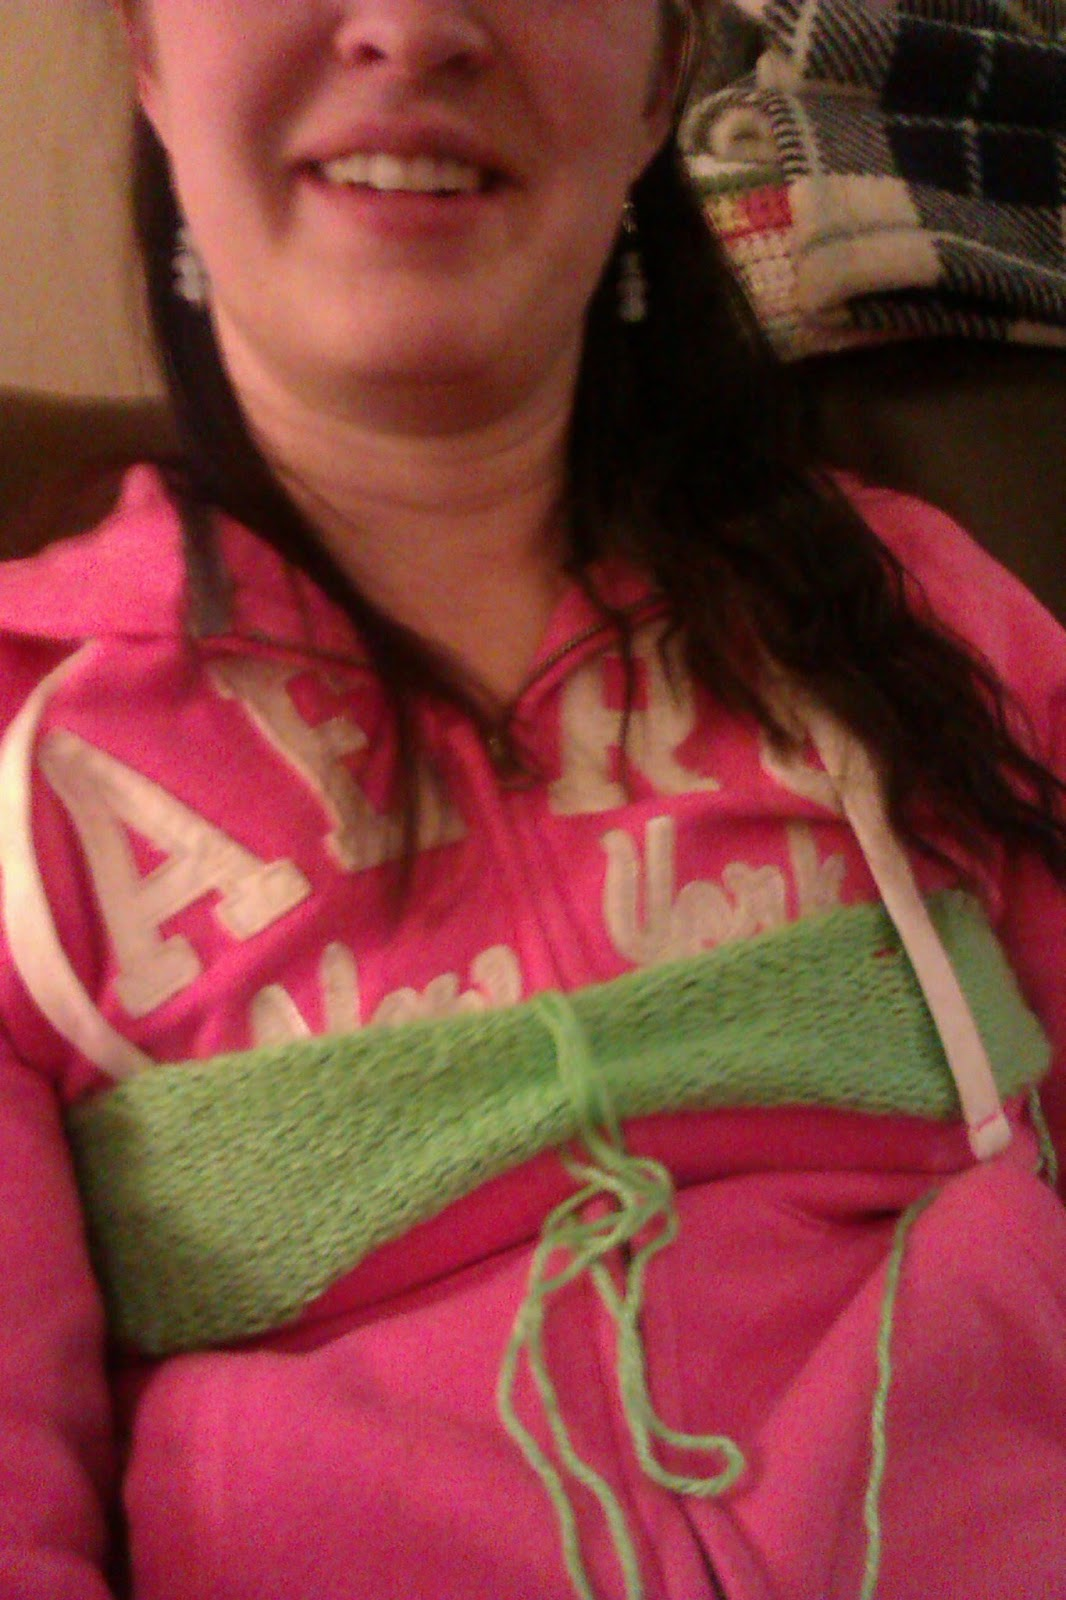 Knitting Goes Wrong : And so it goes knitting gone wrong